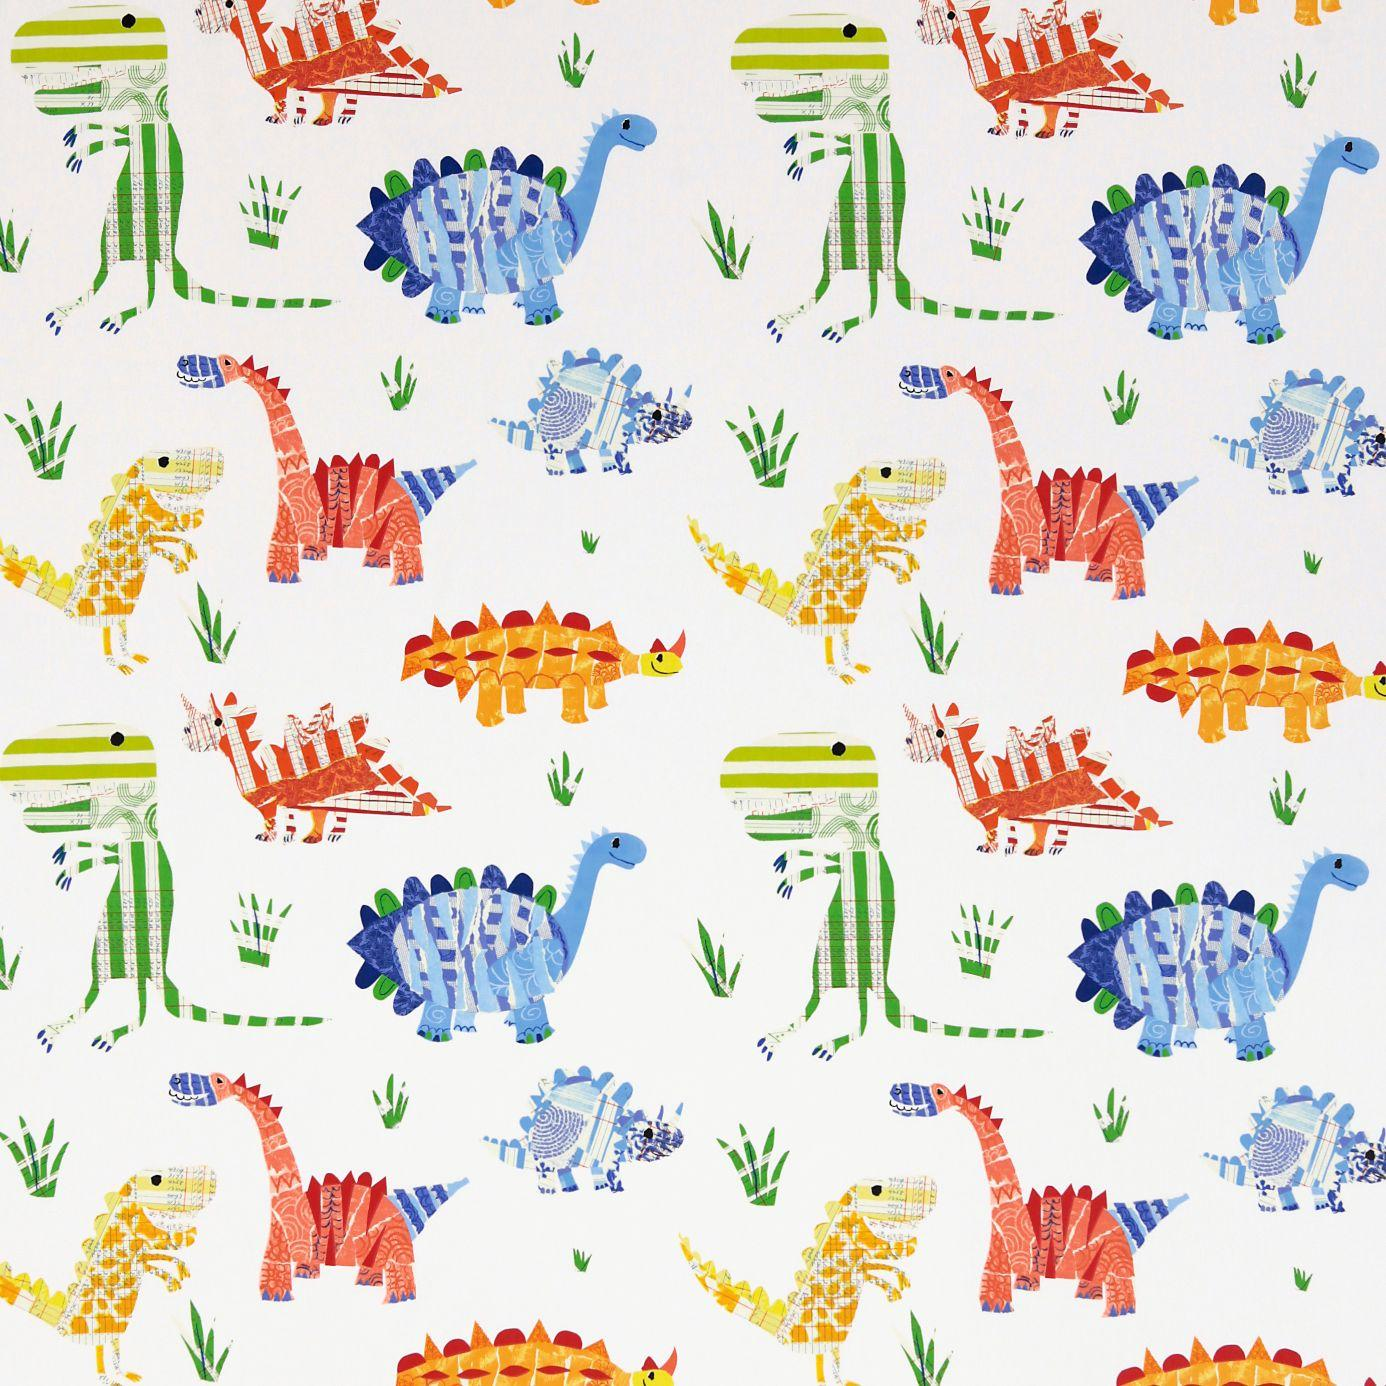 Jolly jurassic fabric aqua tangerine apple natural 3229 for Fabrics for children s rooms